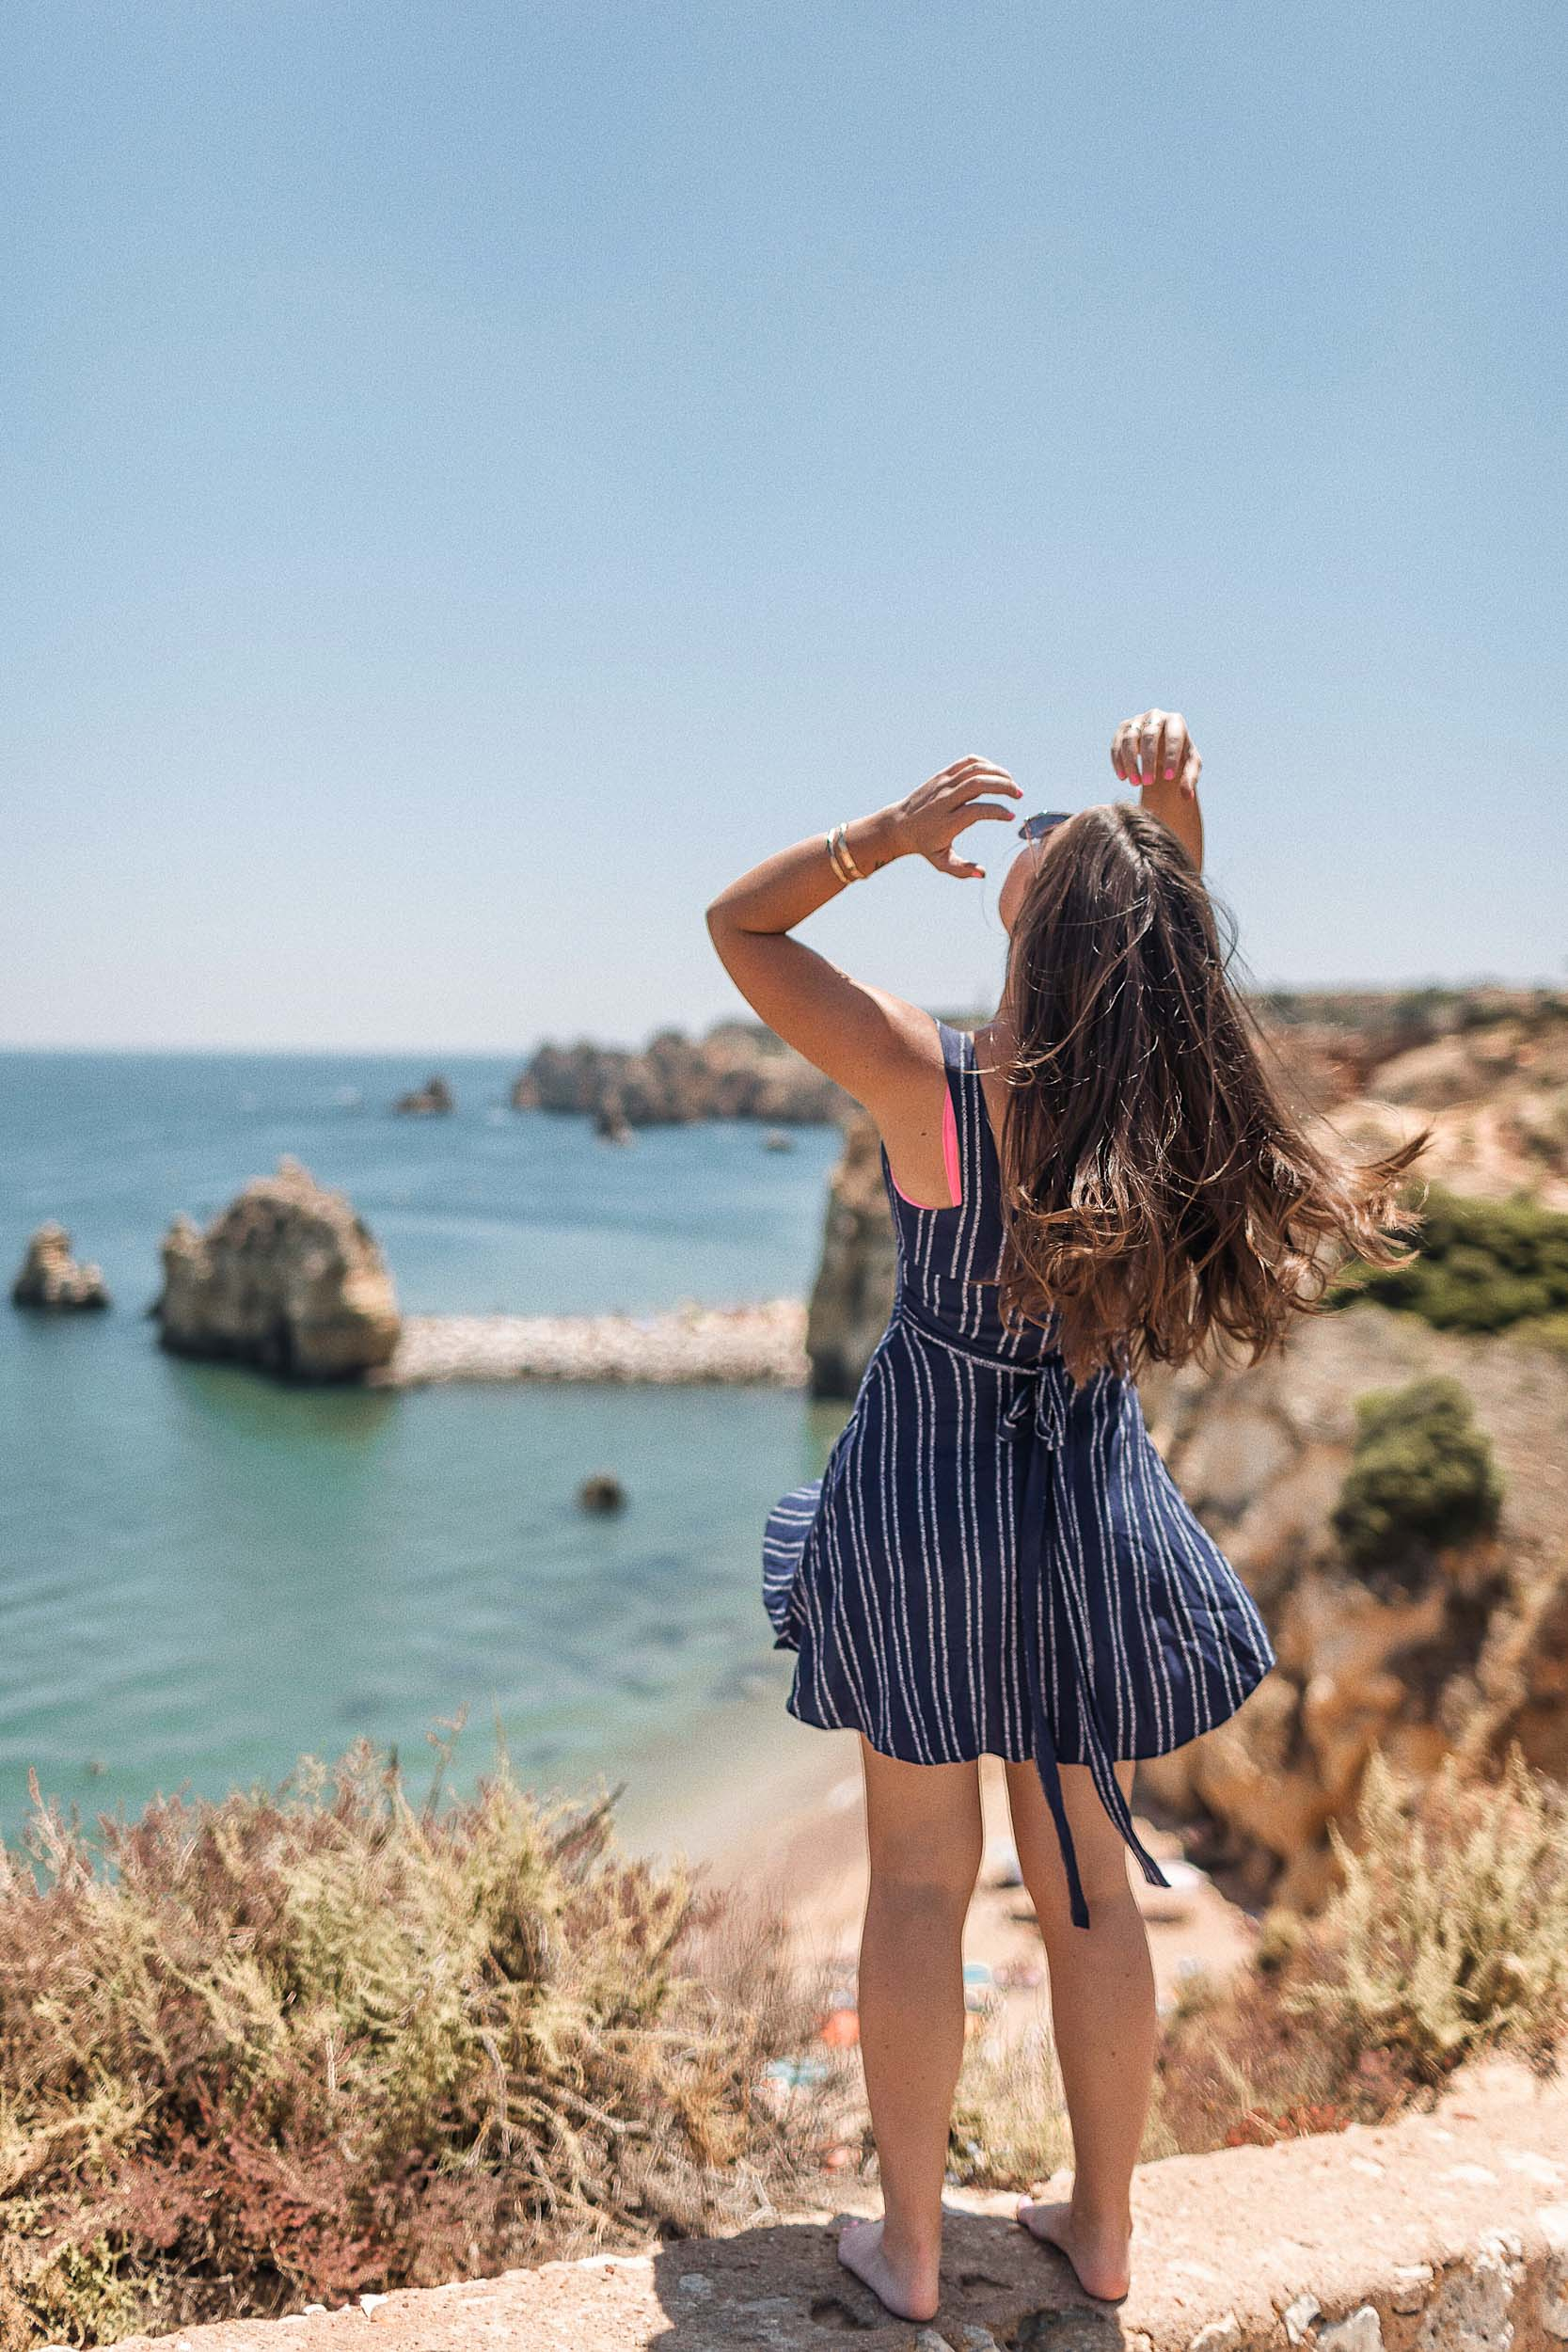 The best places to visit in Portugal: Lagos, Lisbon, Nazare, and Porto